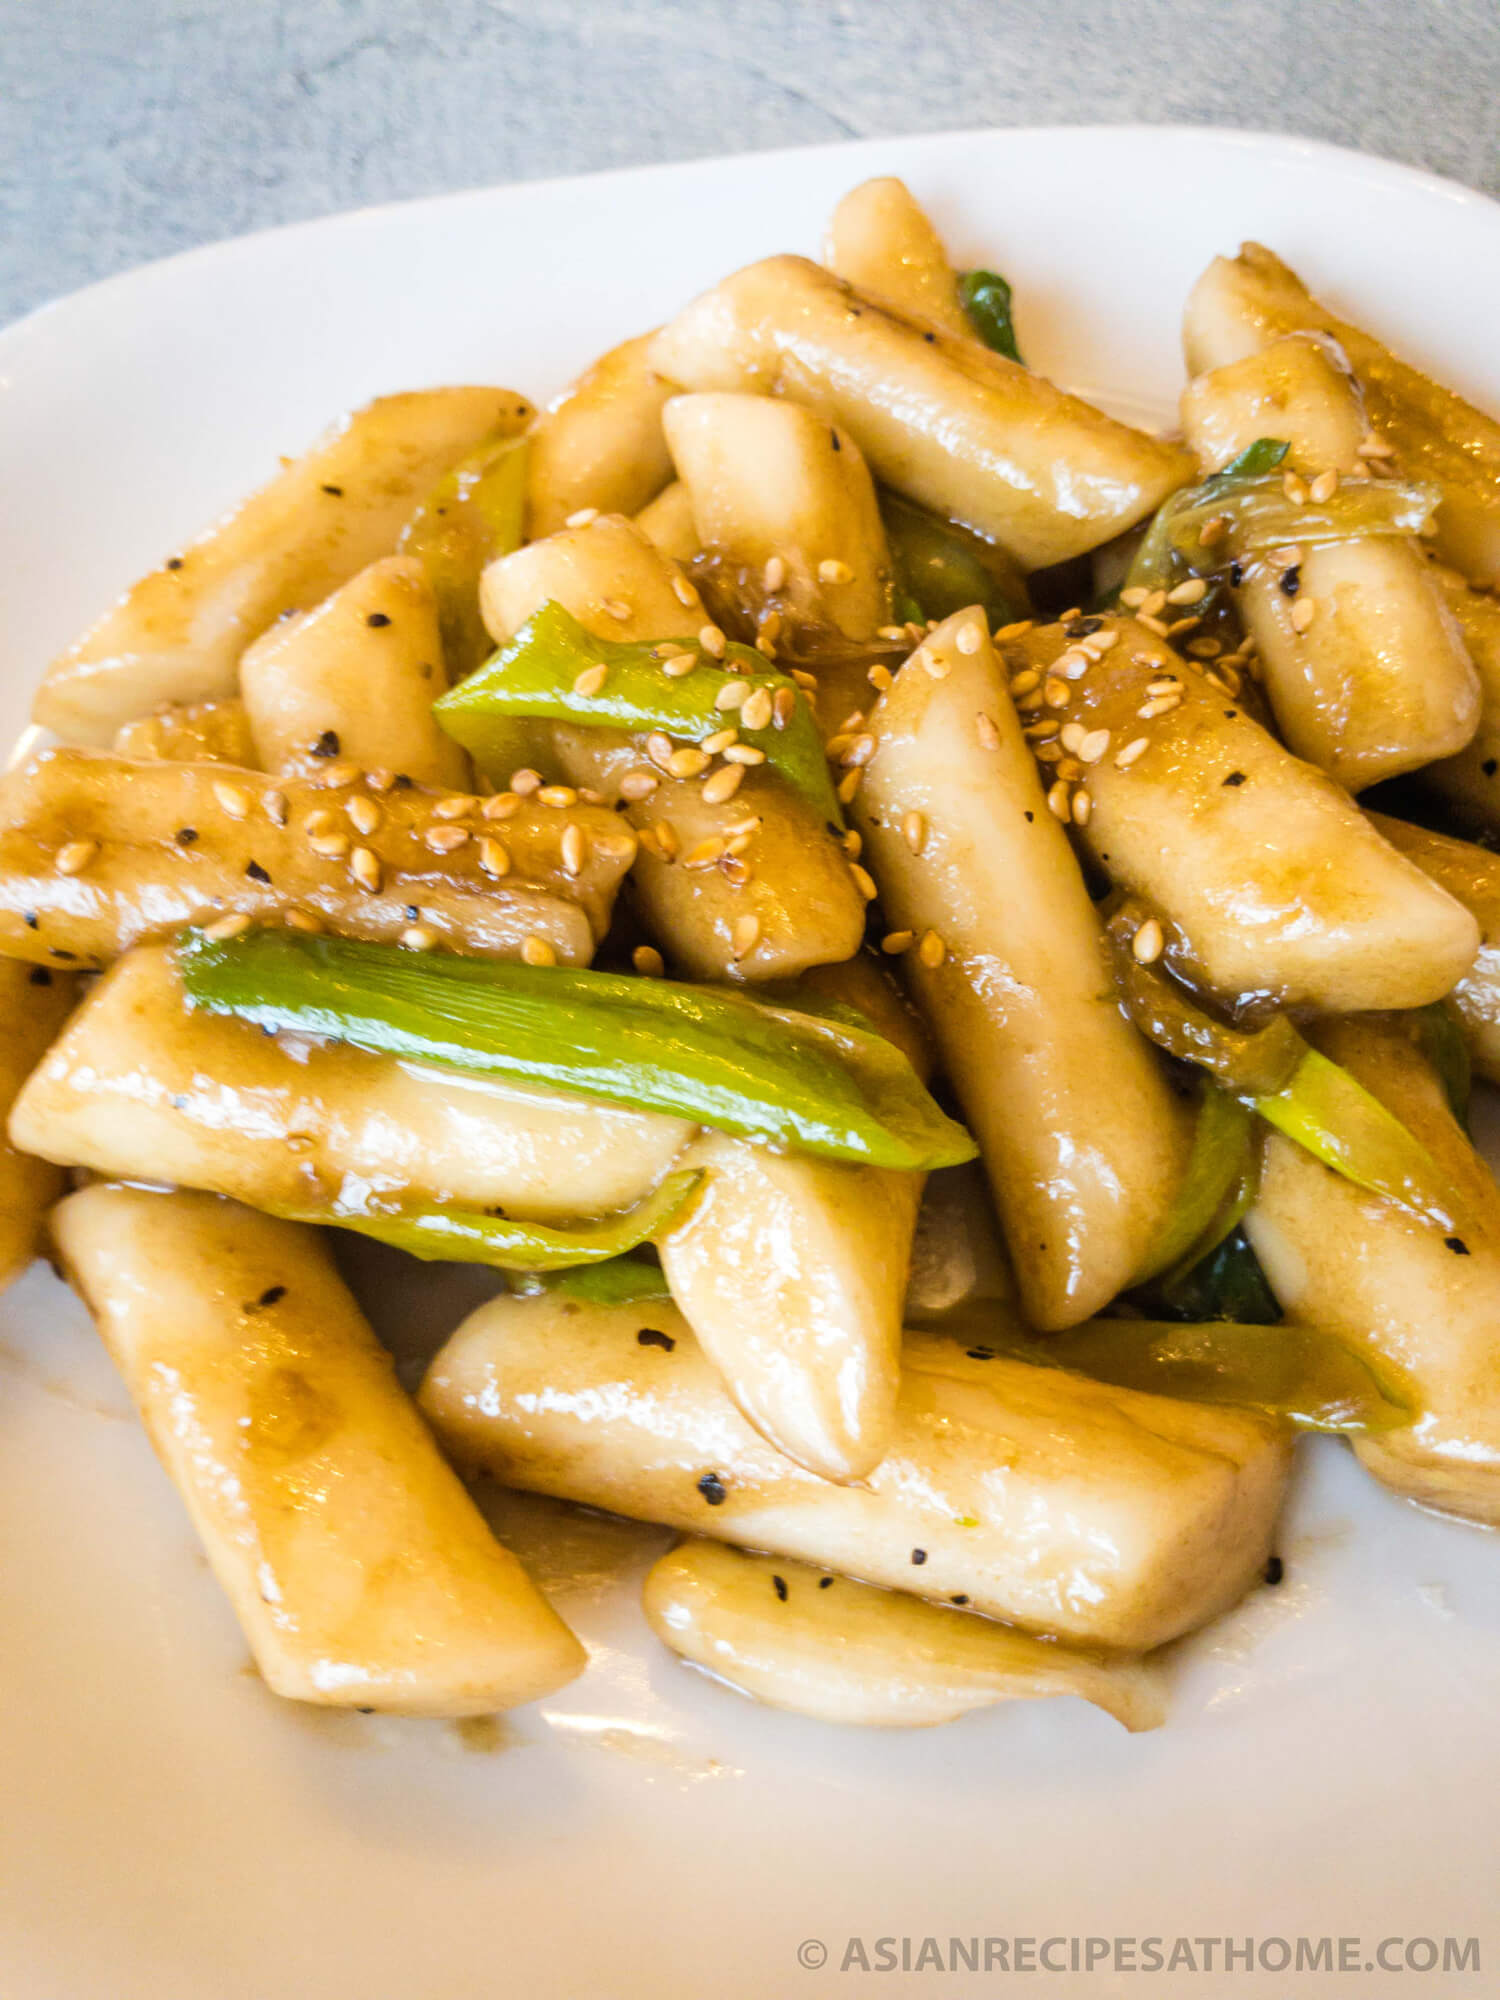 Make our easy Korean Stir-Fried Rice Cakes (Ganjang Tteokbeoki) recipe the next time you want a quick savory appetizer or snack.